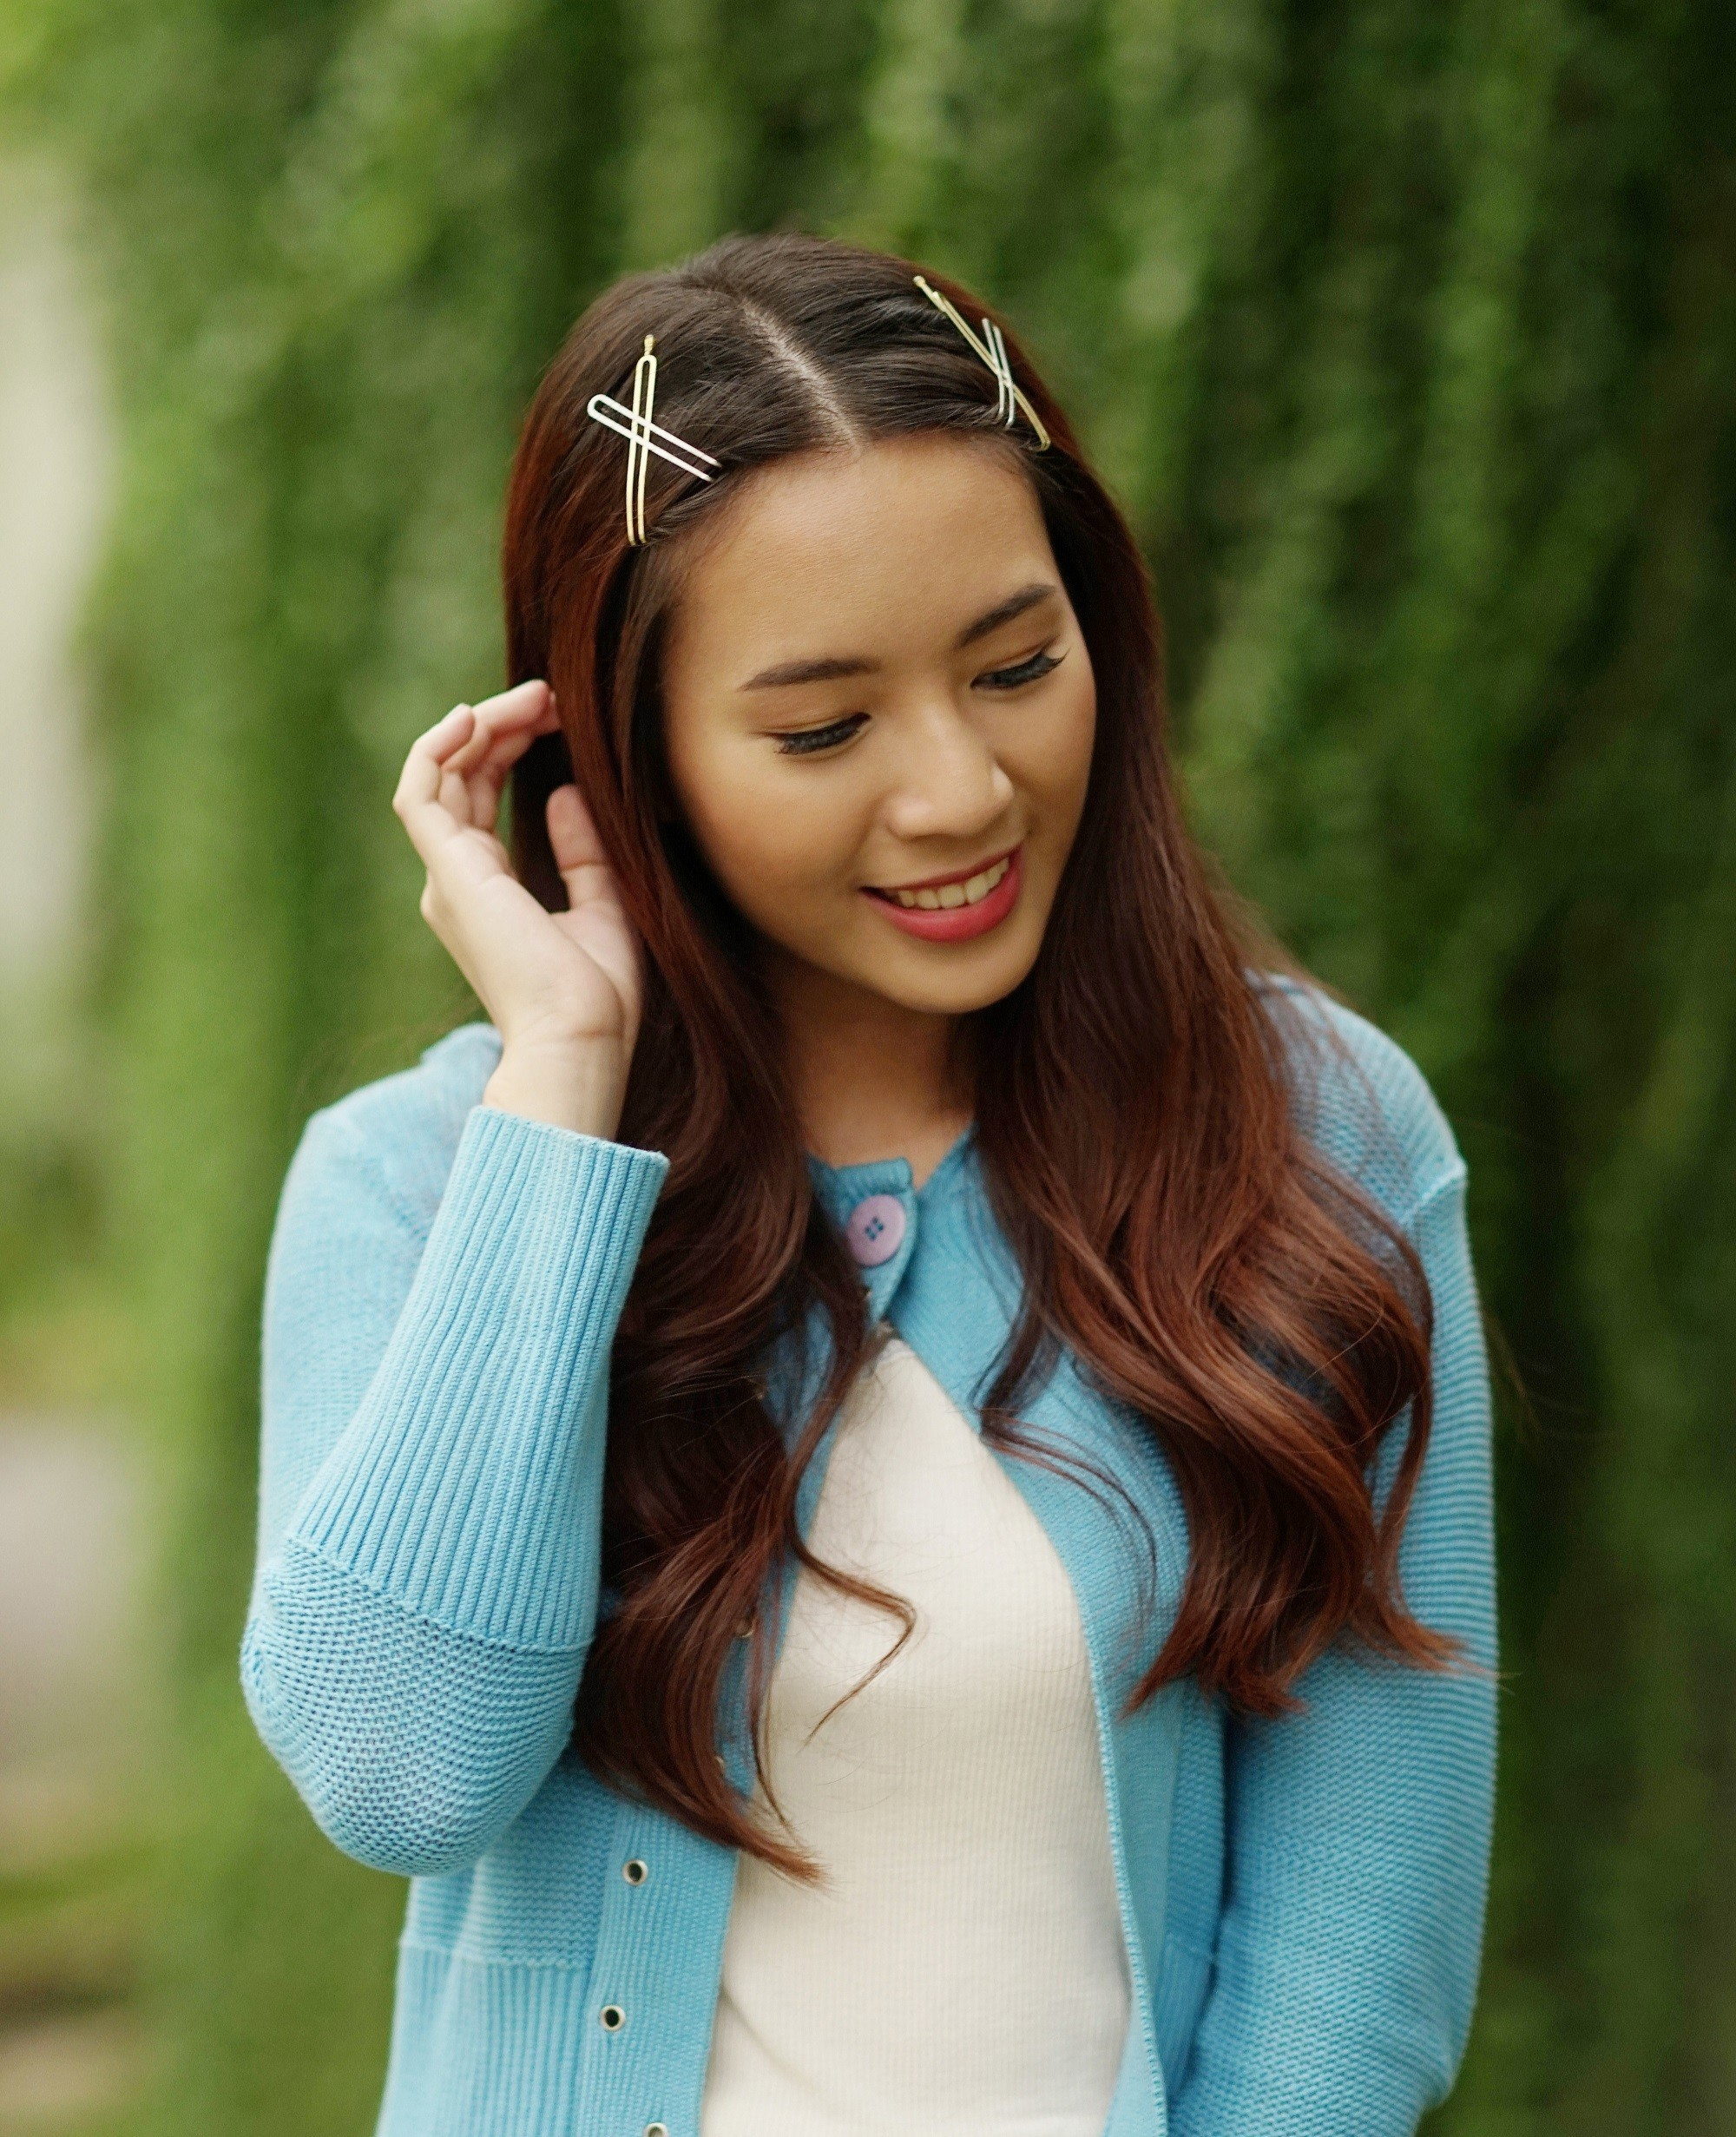 Hair clip hairstyles: Asian woman with long dark brown hair with hair clips wearing a blue cardigan outdoors